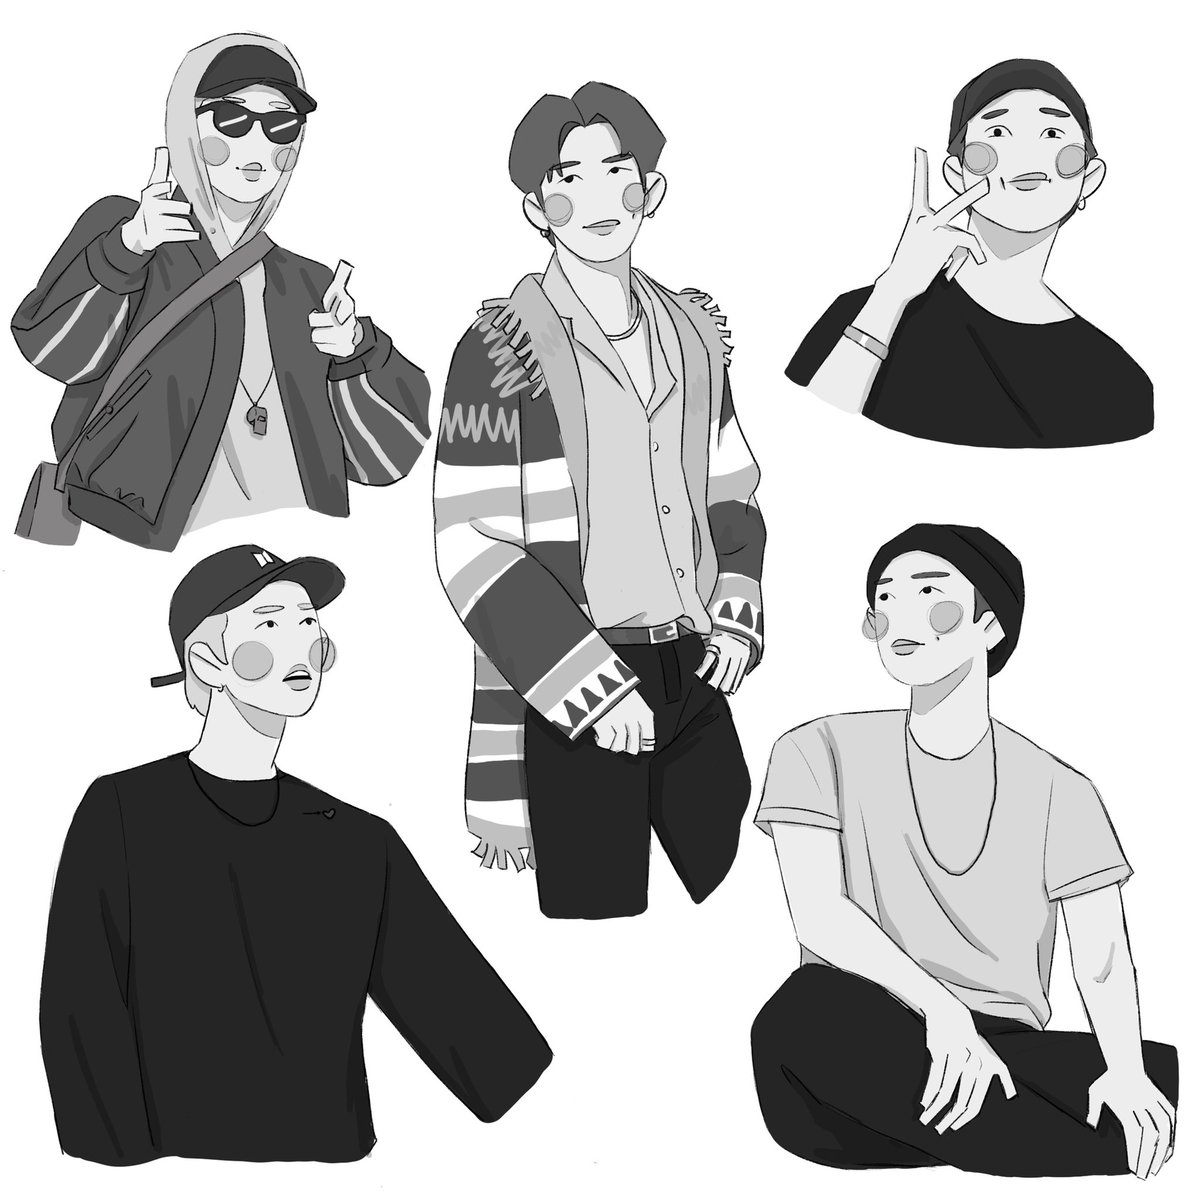 Day 1 of drawing images from my bookmarks— Namjoon edition  #btsfanart #bts #rm #NAMJOONpic.twitter.com/dlQ61tM6Va